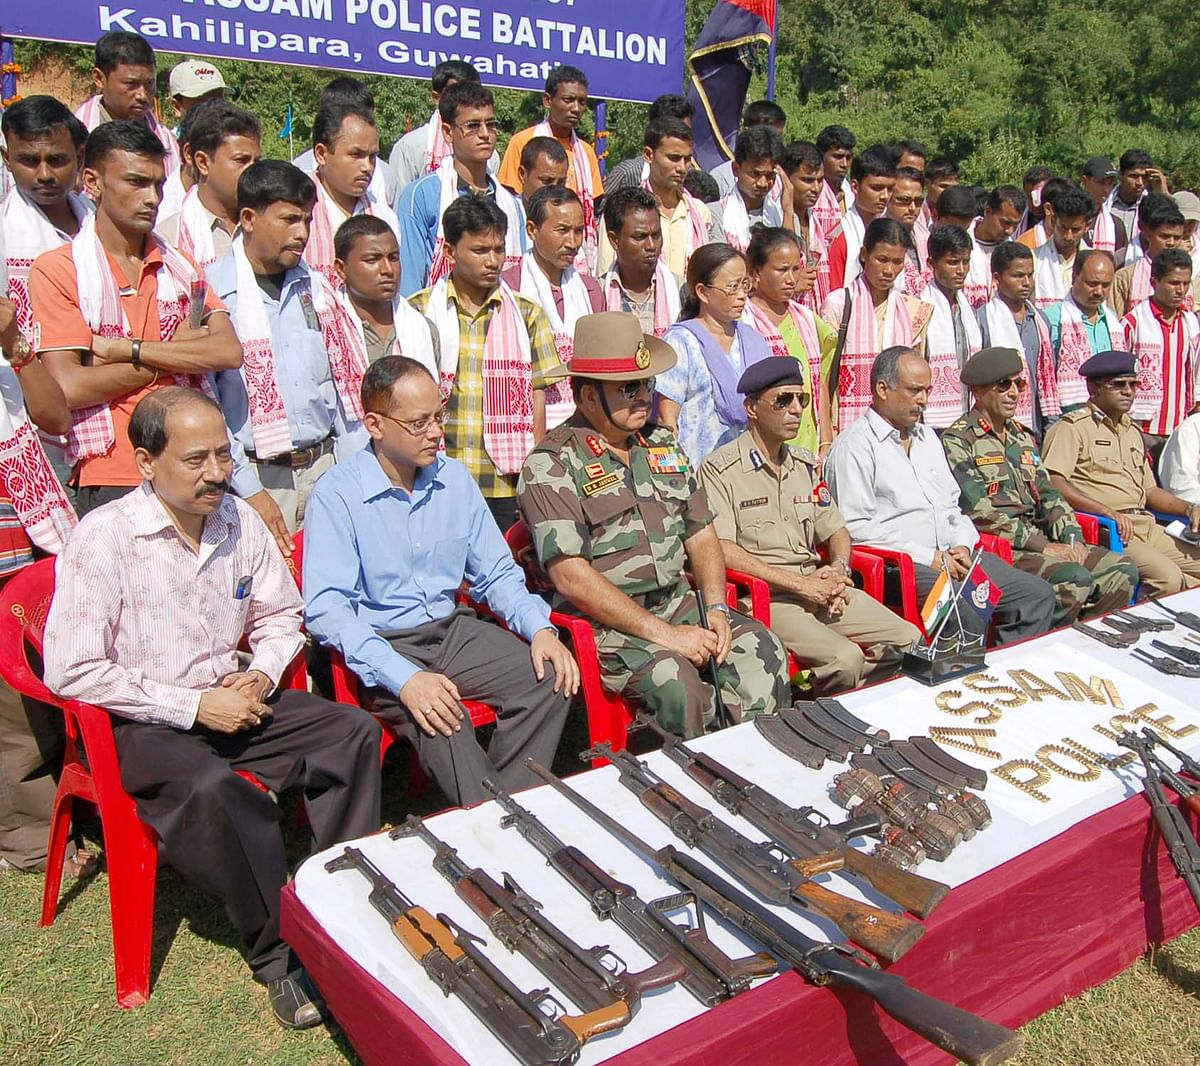 Surrender of ULFA cadres with Weapons in Guwahati ( 2007)